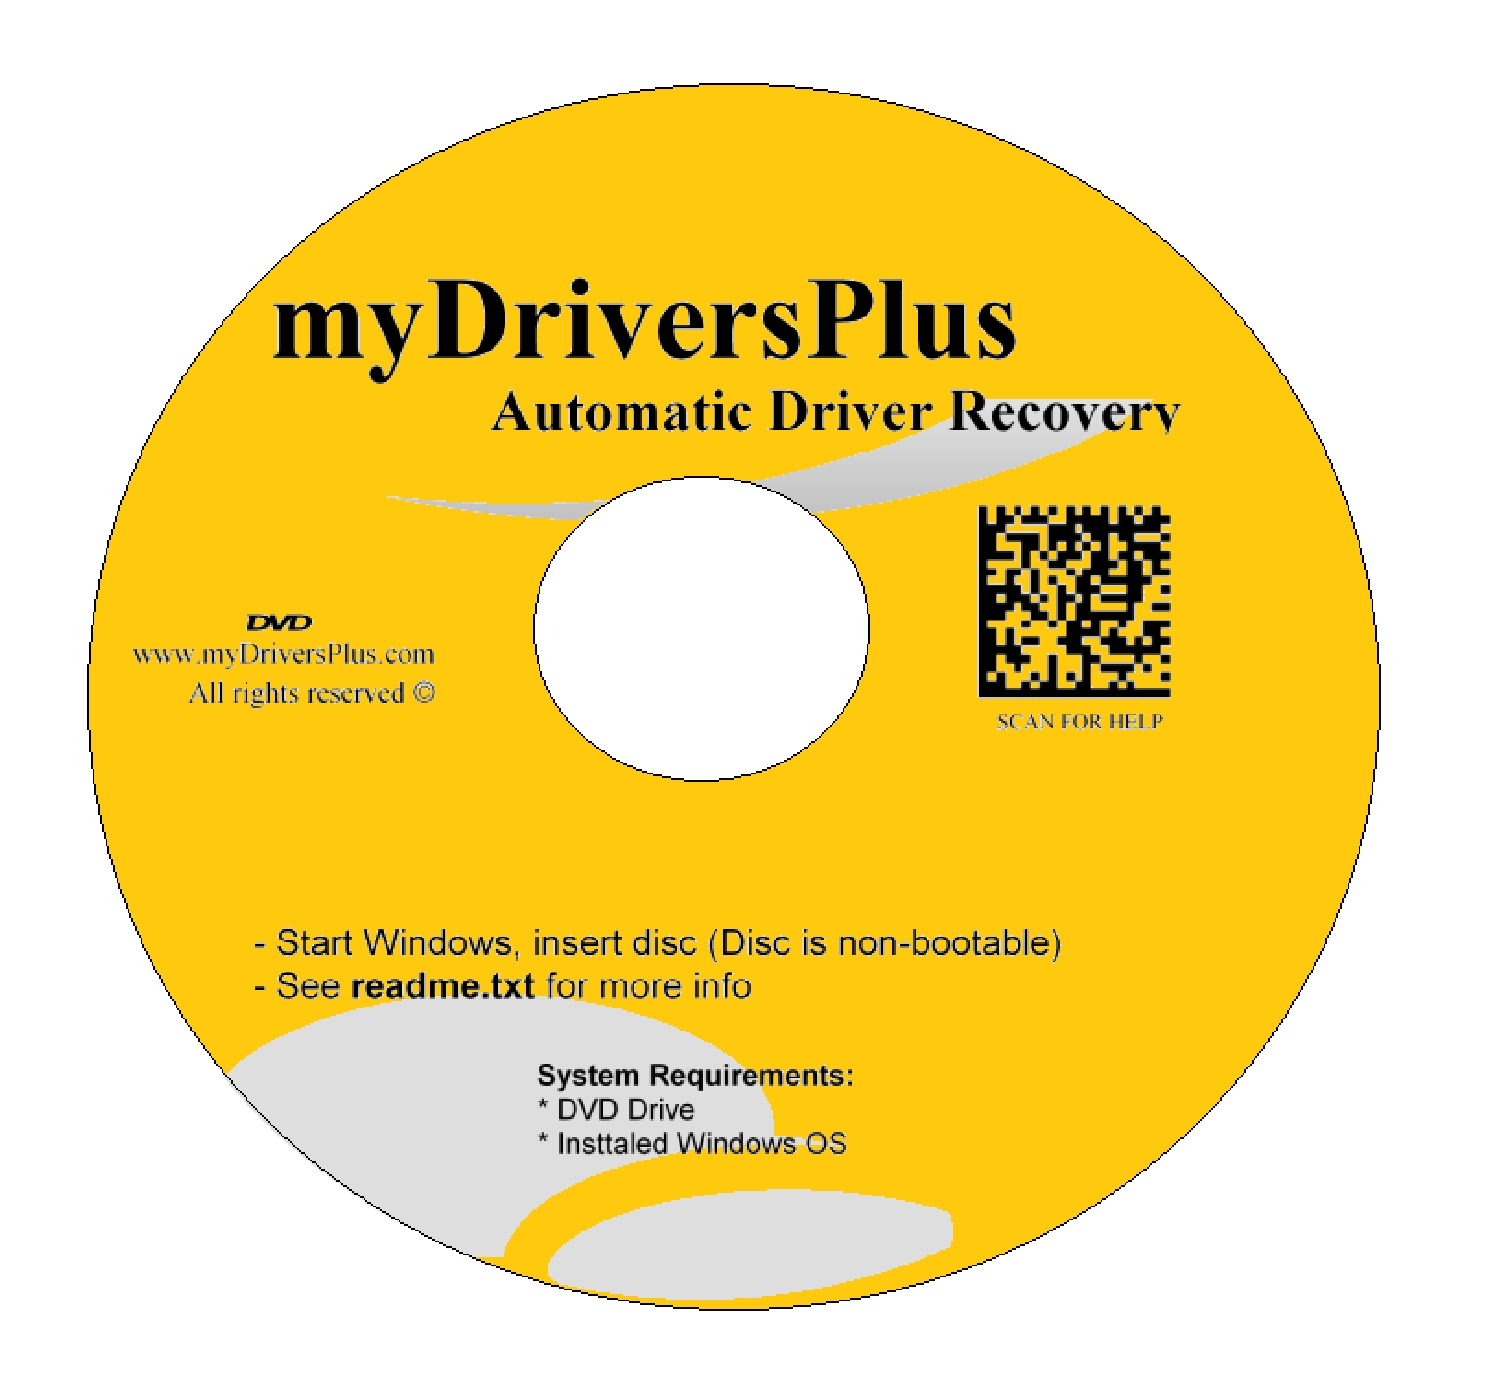 Compaq Presario 4550 Drivers Recovery Restore Resource Utilities Software with Automatic One-Click Installer Unattended for Internet, Wi-Fi, Ethernet, Video, Sound, Audio, USB, Devices, Chipset ...(D